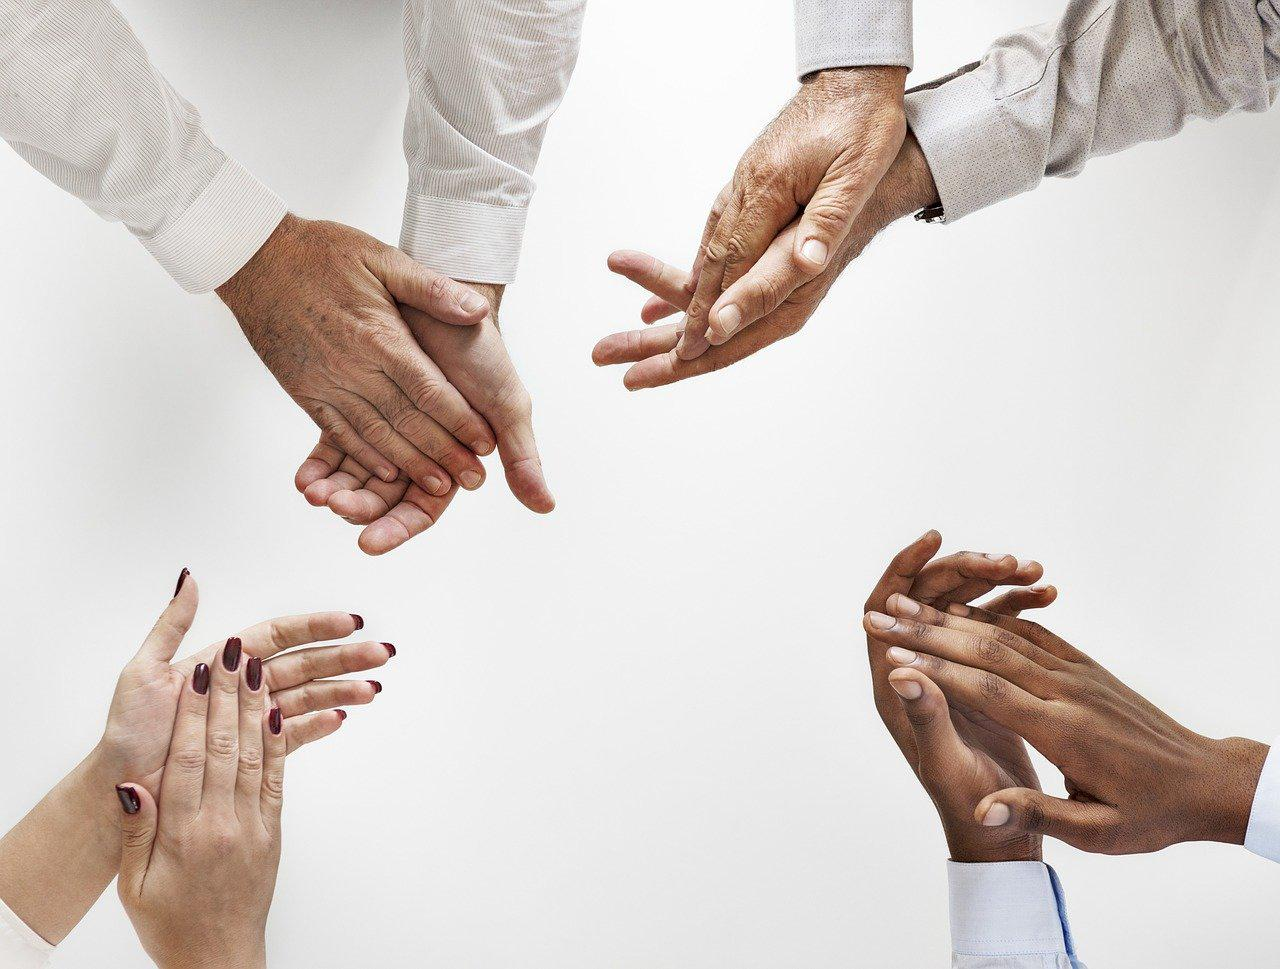 5 Reasons Why Team Building Activities Are So Much In Demand